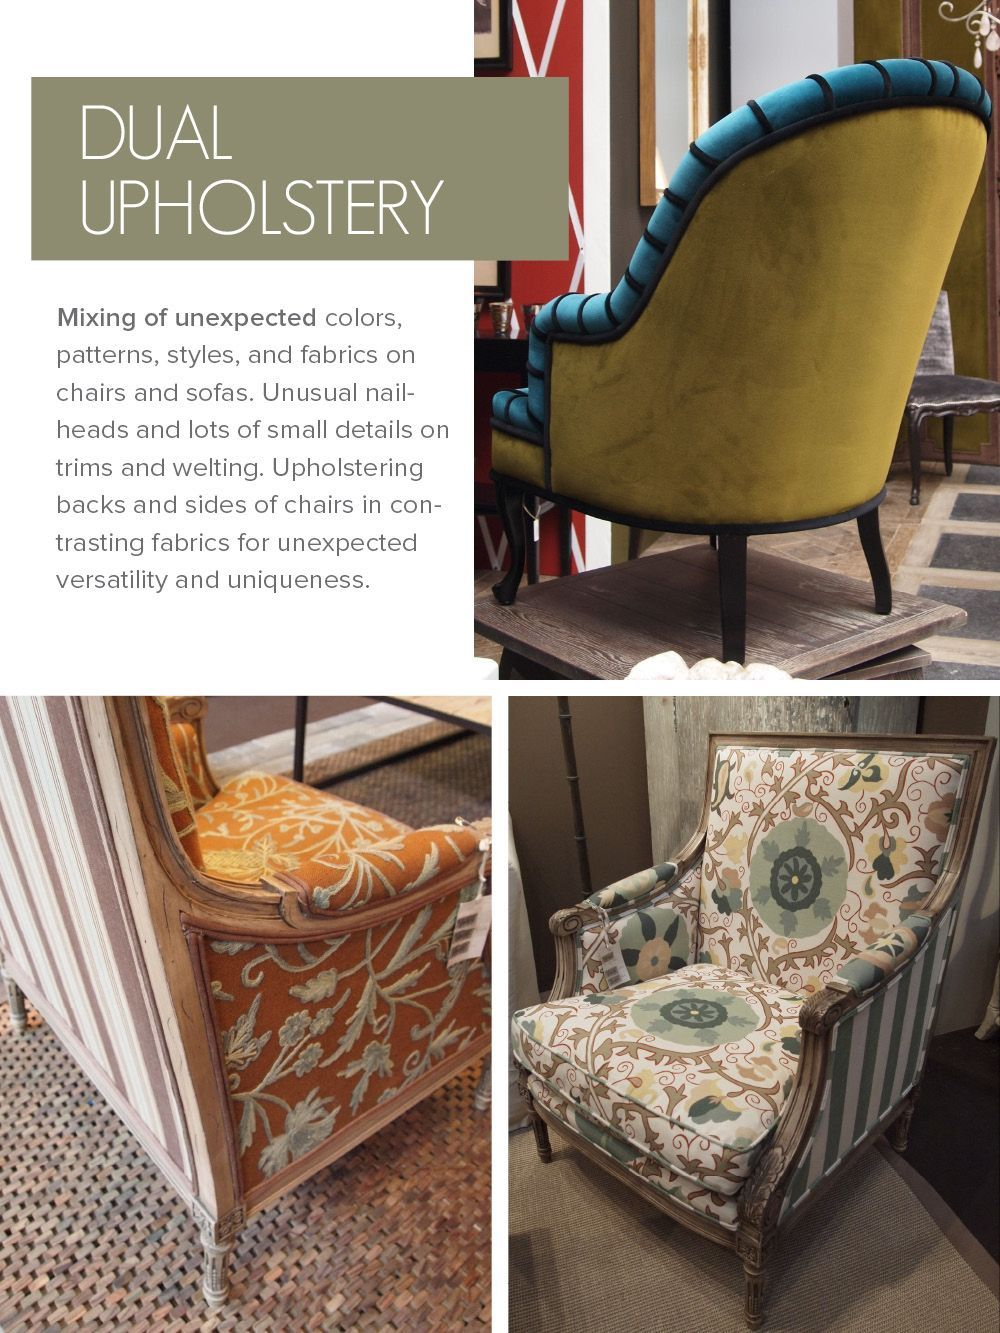 10 Delightful Upholstery Diy Ideas Couch Upholstery Upholstery Trends Sofa Upholstery